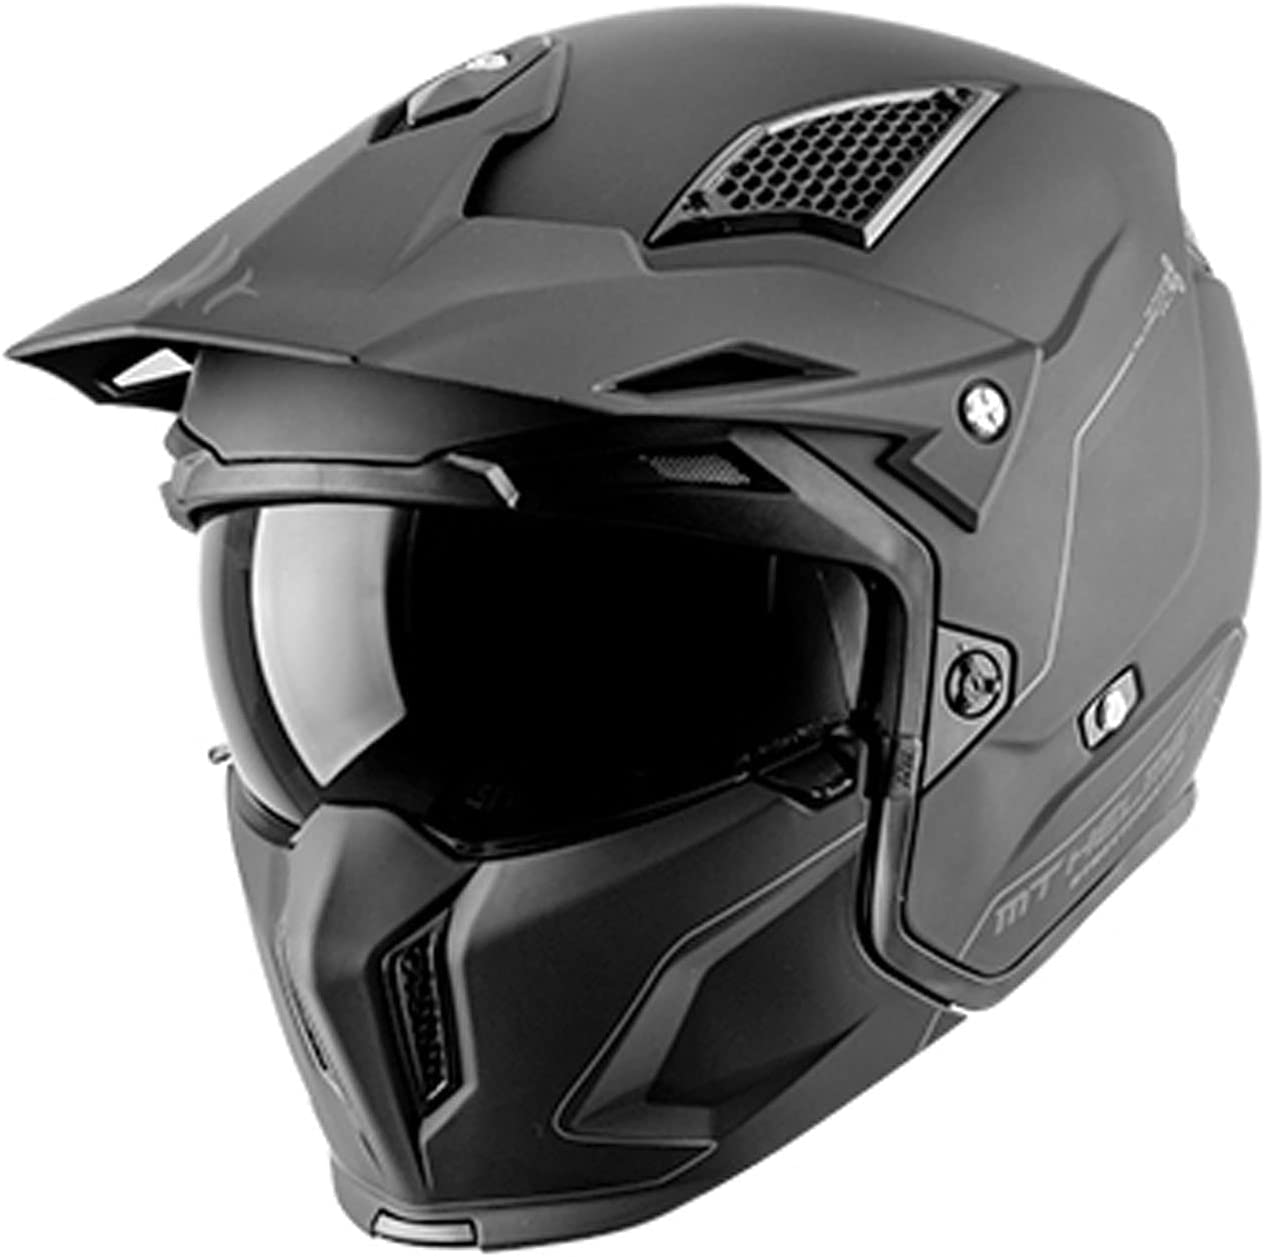 Retro Helmet Street Fighter Half Detachable Special price for a limited time Combination H Sale special price